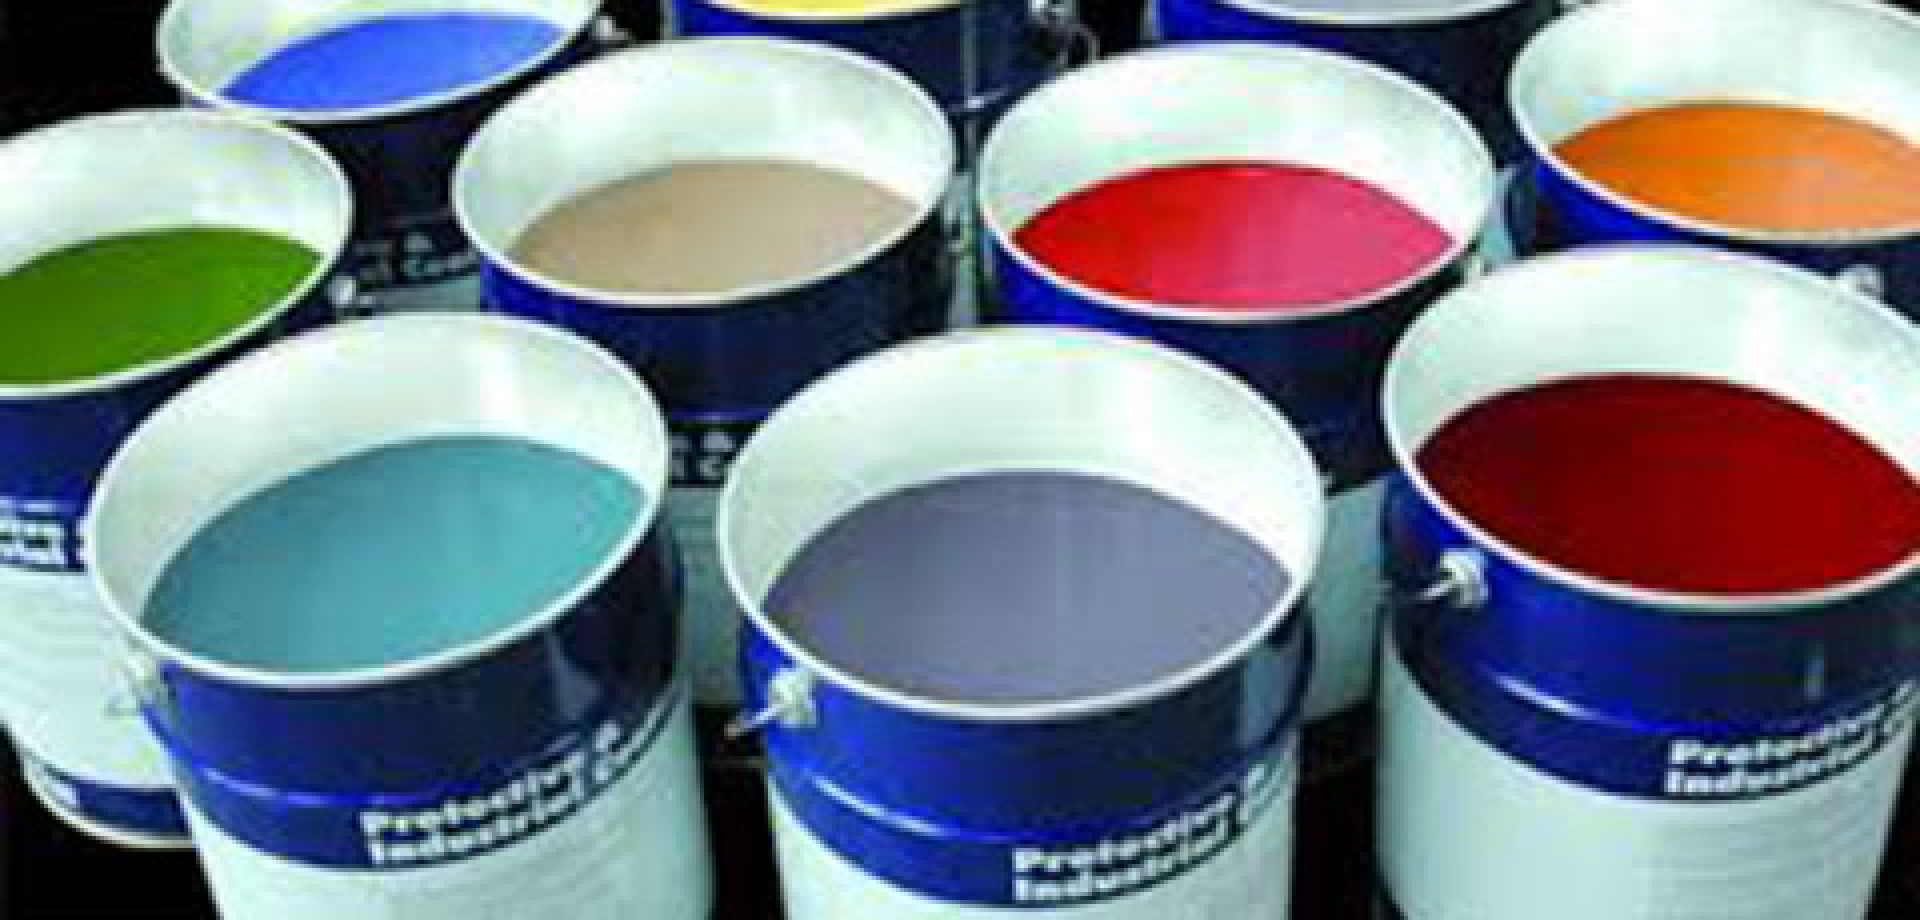 Paint, Plaster, Mortar, Tile Adhesive and Grout